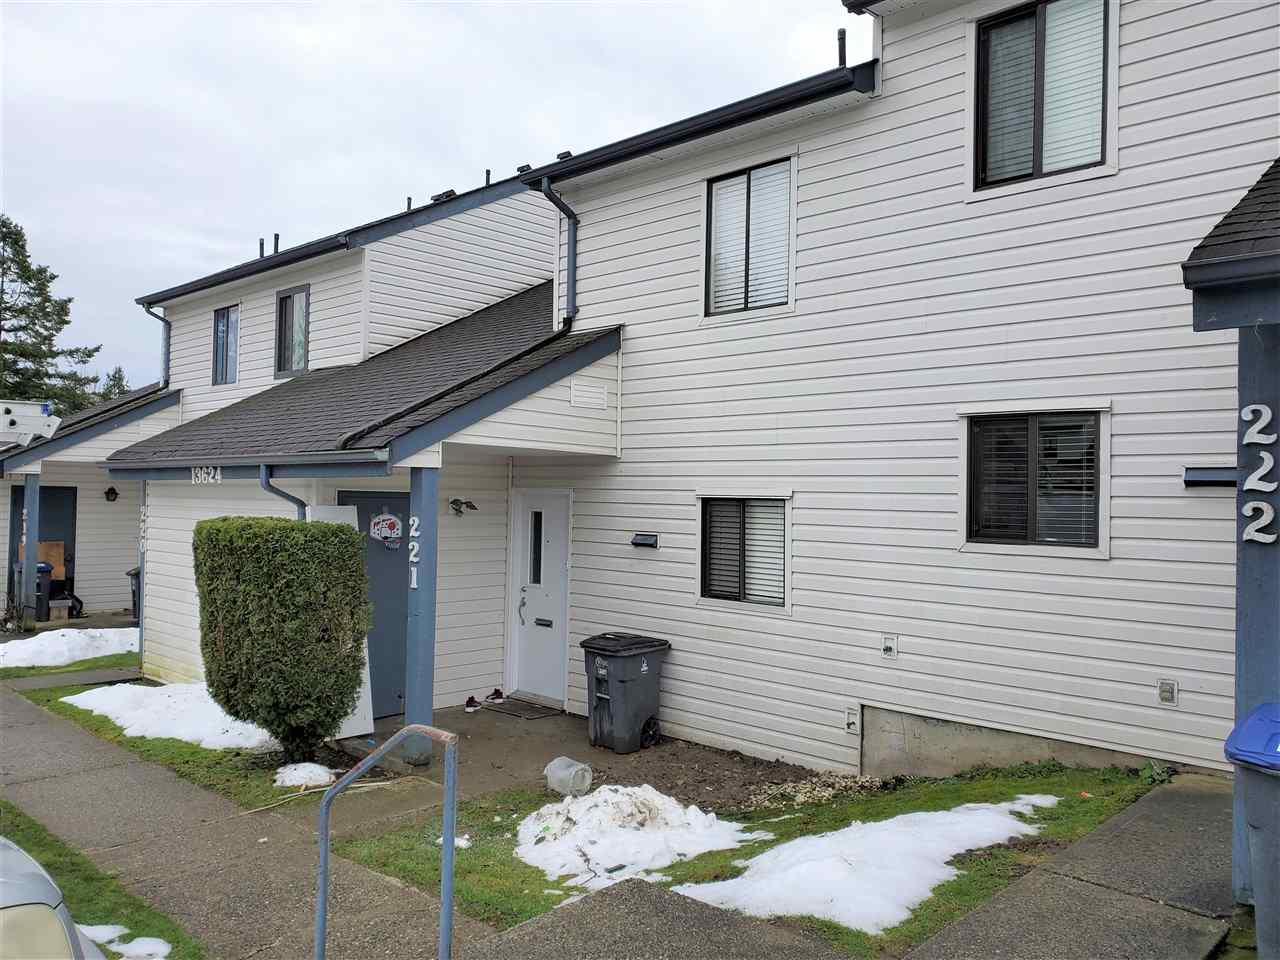 Removed: 221 - 13624 67 Avenue, Surrey, BC - Removed on 2020-01-31 07:27:16